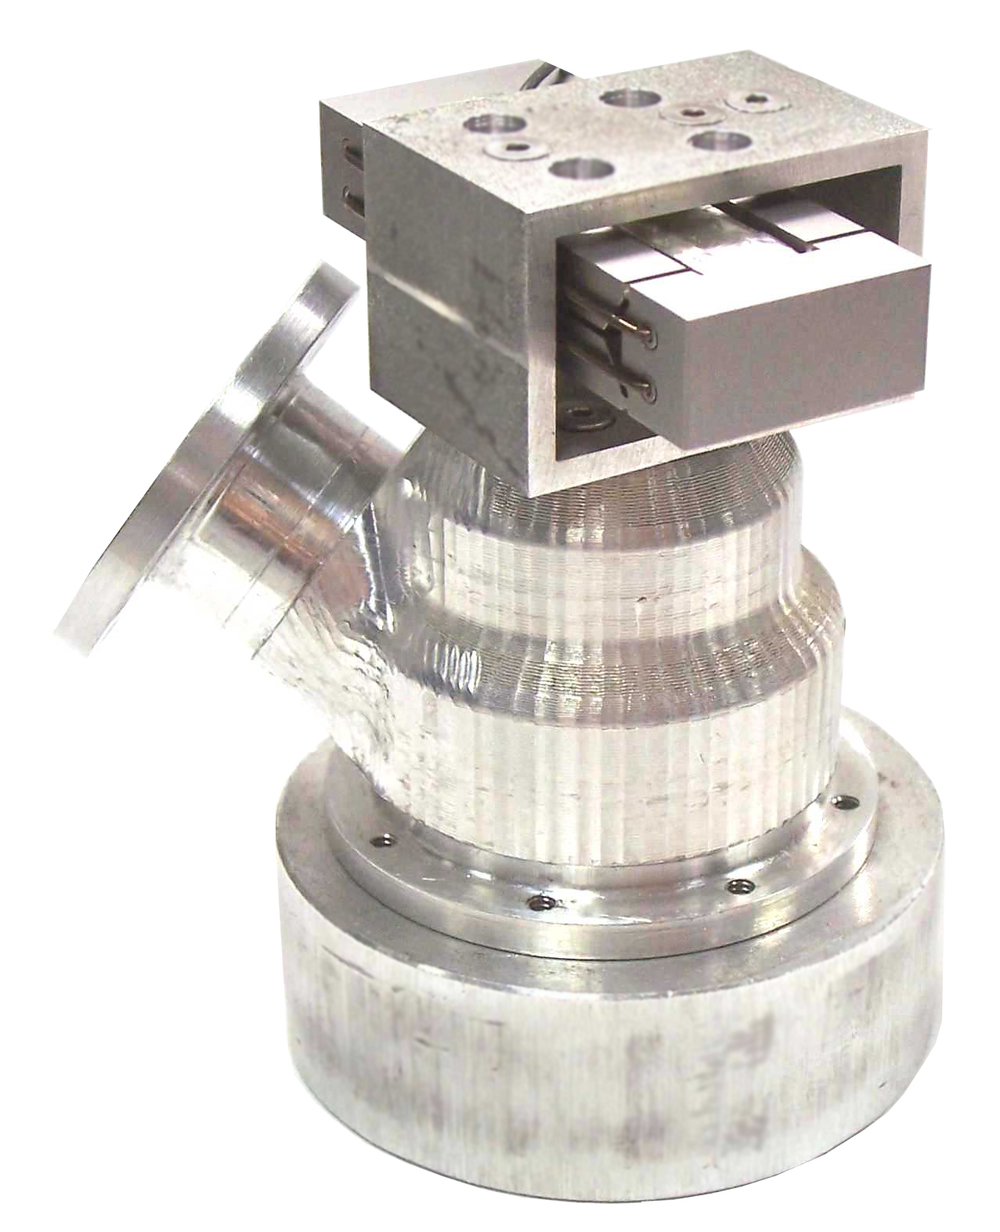 PZT actuator integrated into cryogenic valve